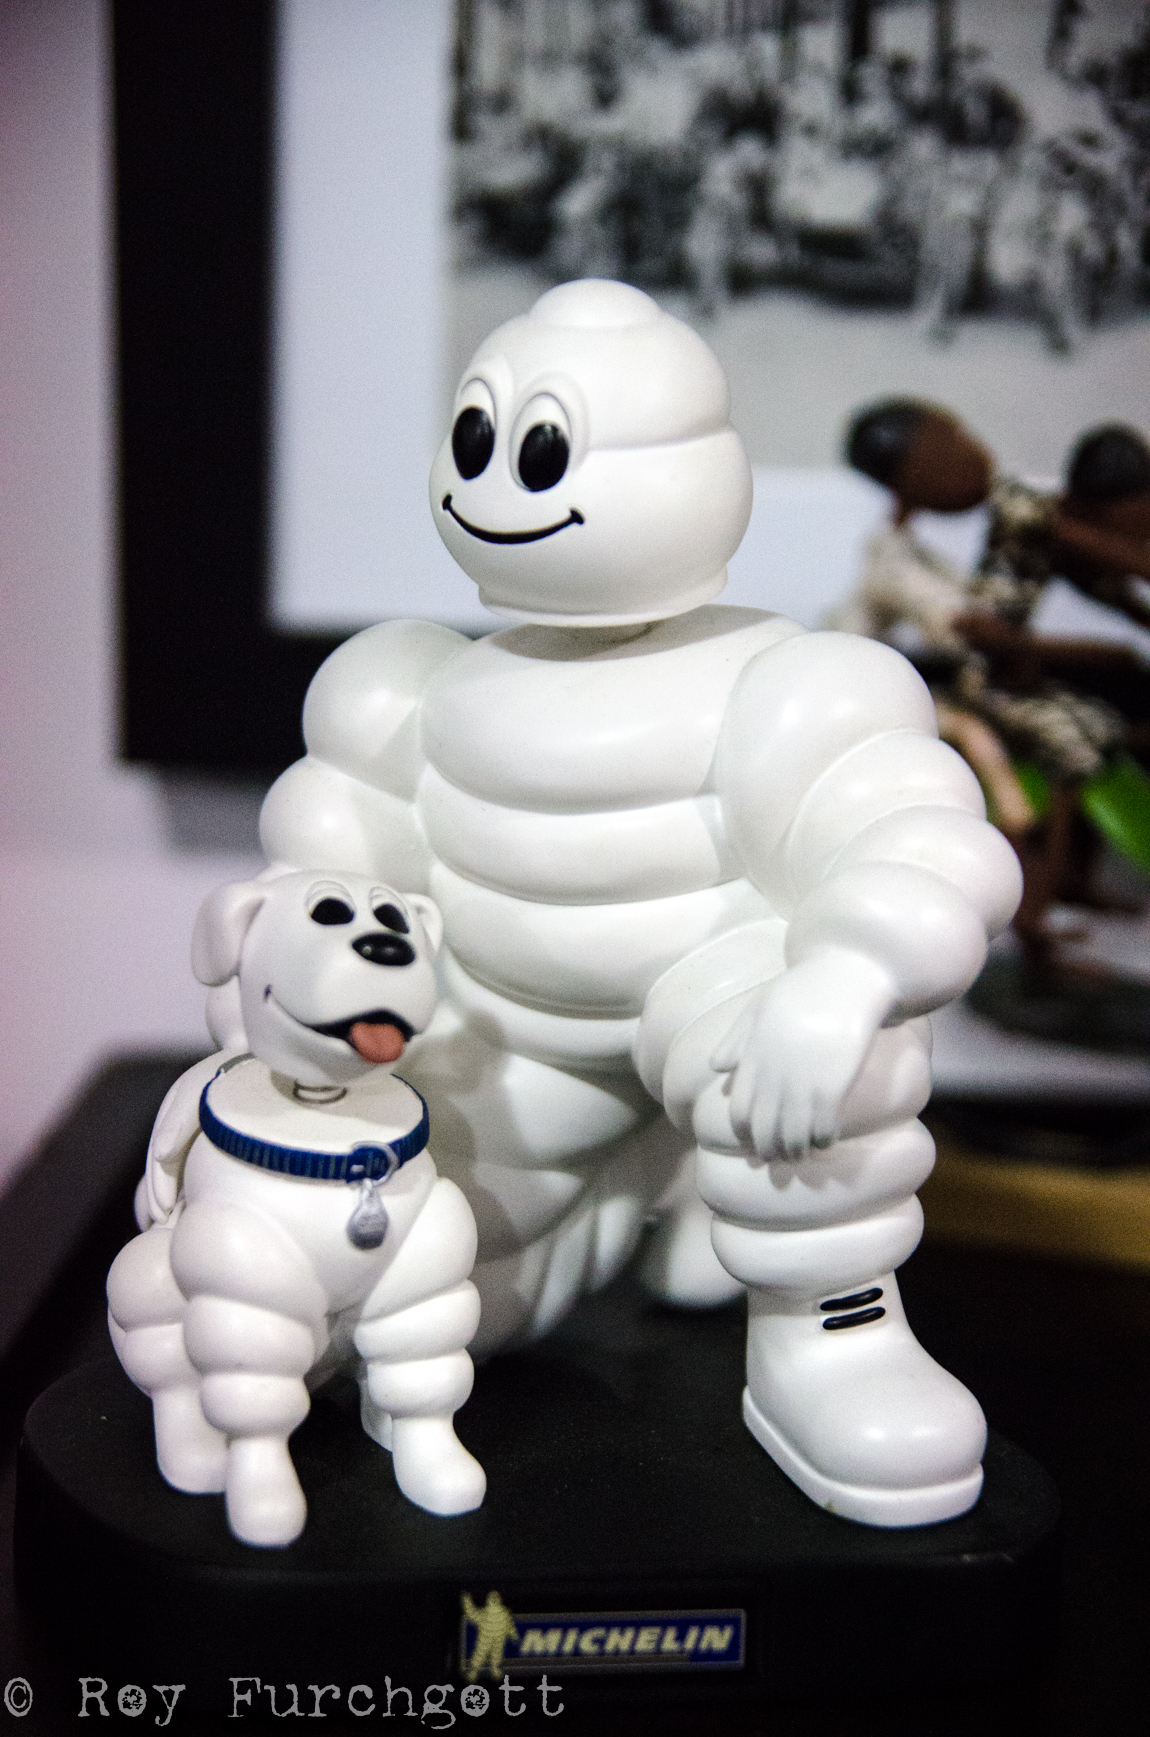 Who knew Bibendum—a.k.a. the Michelin Man—had a pet?